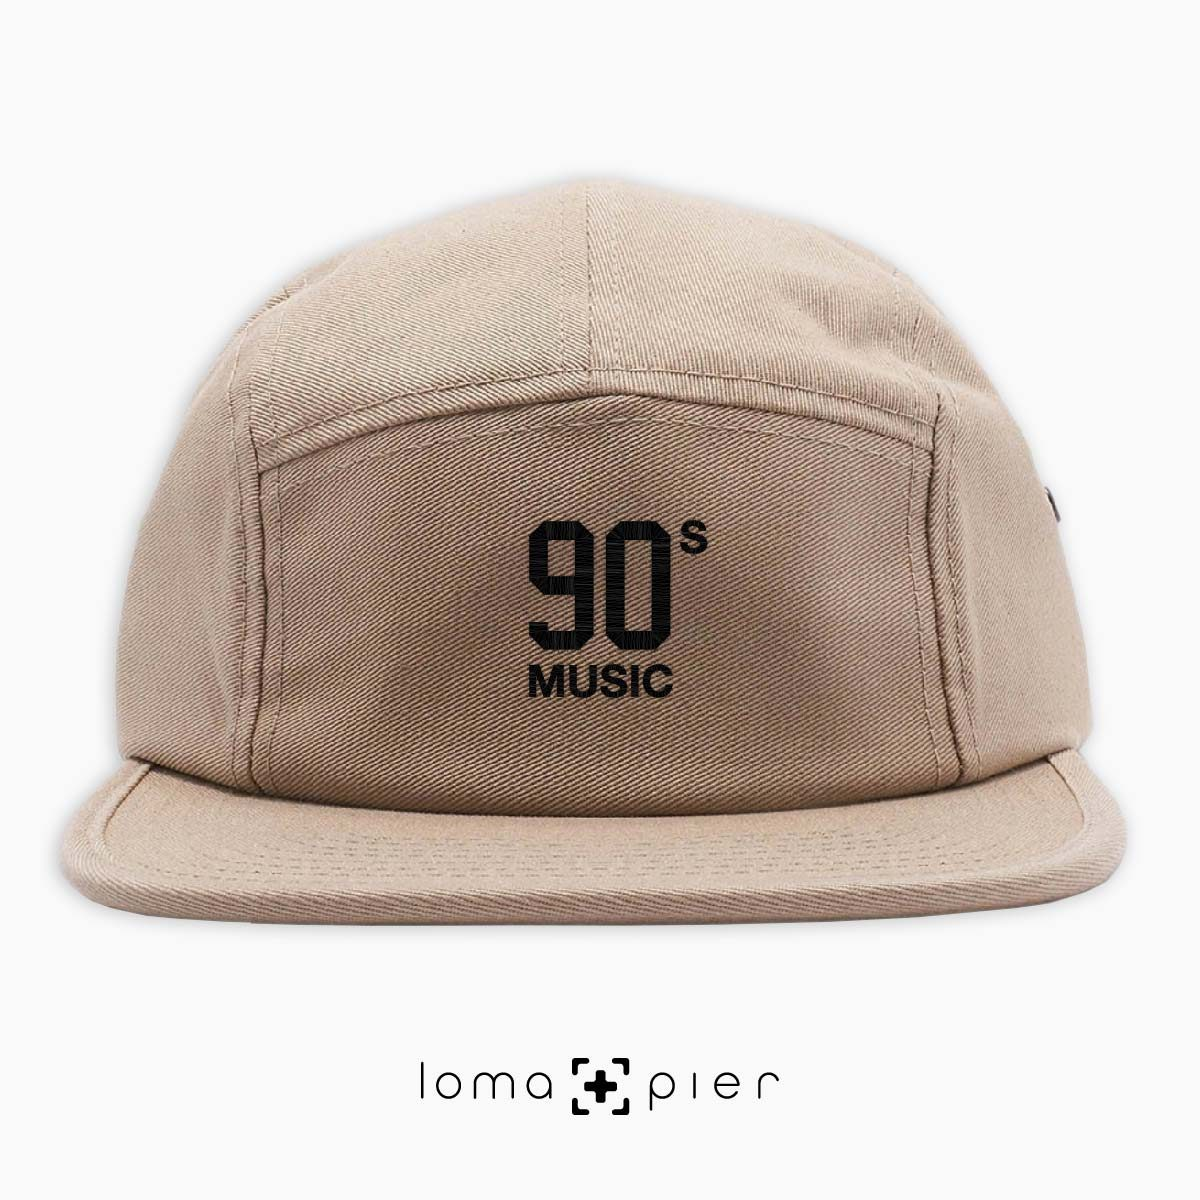 90's MUSIC typography embroidered on a khaki cotton 5-panel hat with black thread by loma+pier hat store